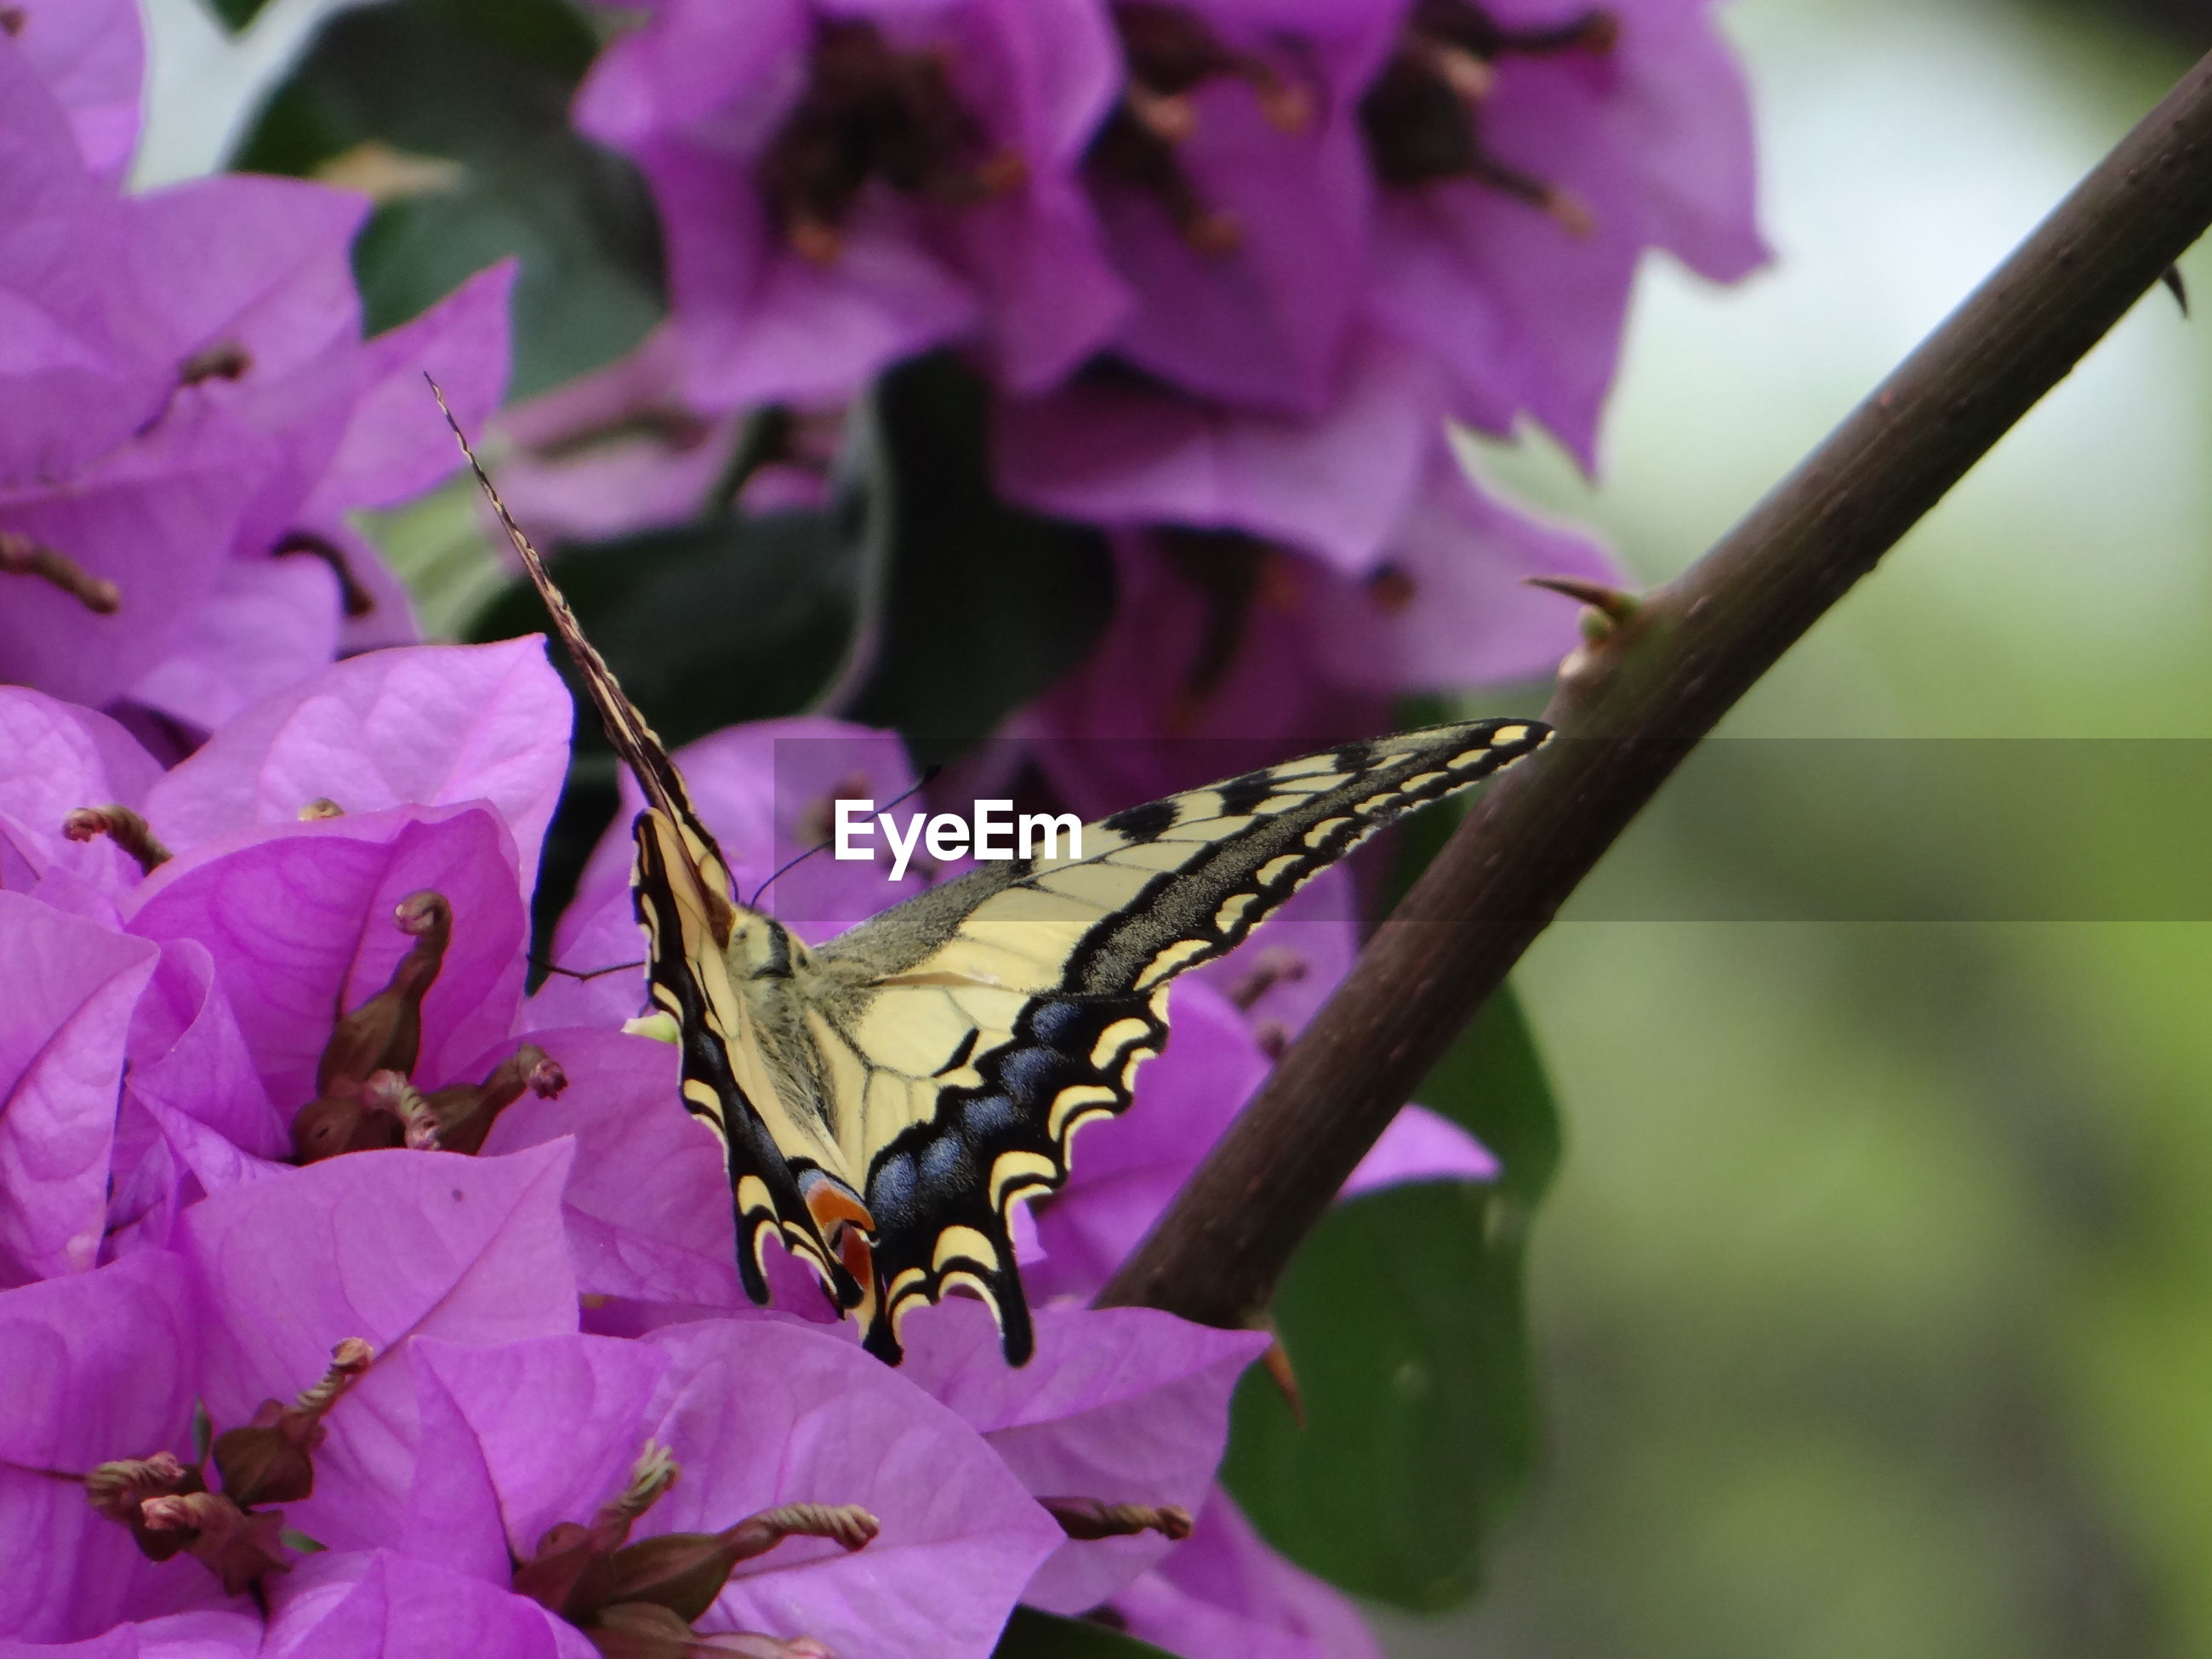 Close-up of butterfly pollinating on purple flowers